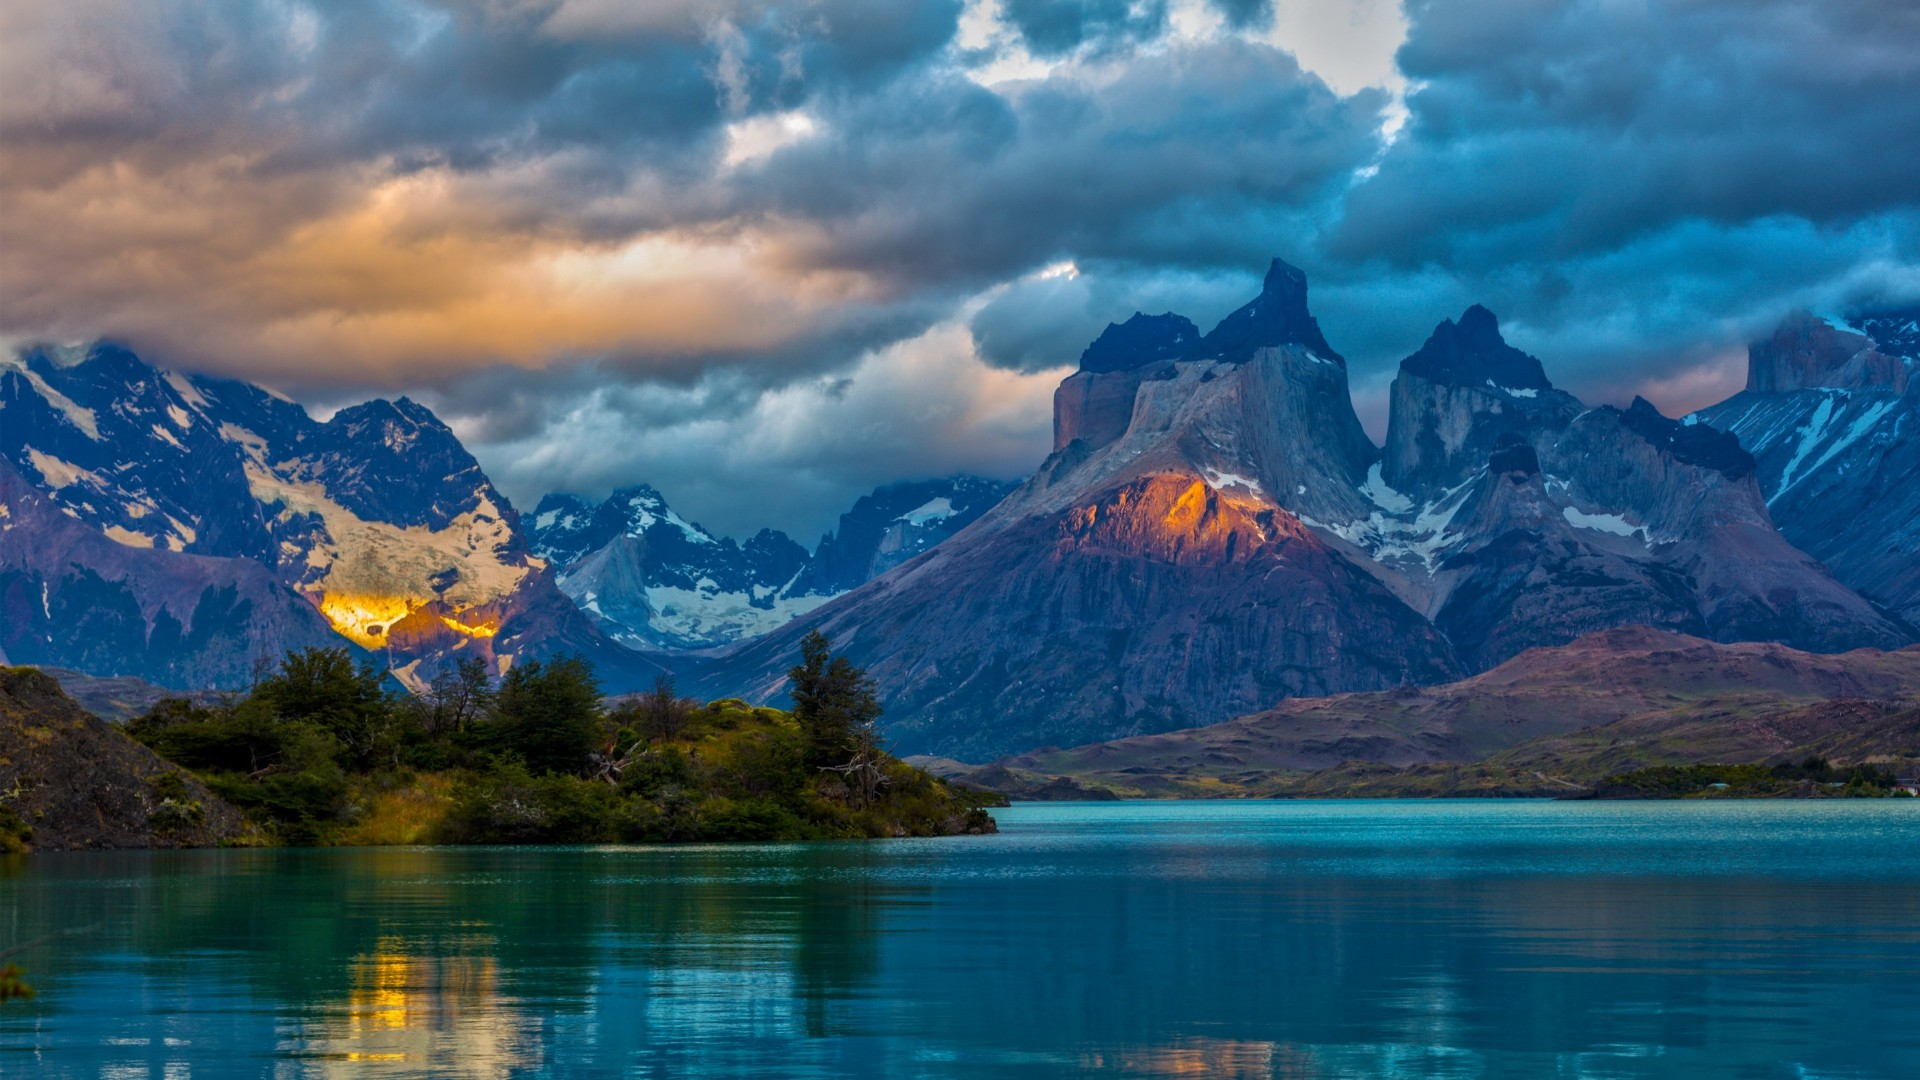 1920x1080 Preview wallpaper landscape, argentina, mountain, lake, patagonia, clouds,  nature